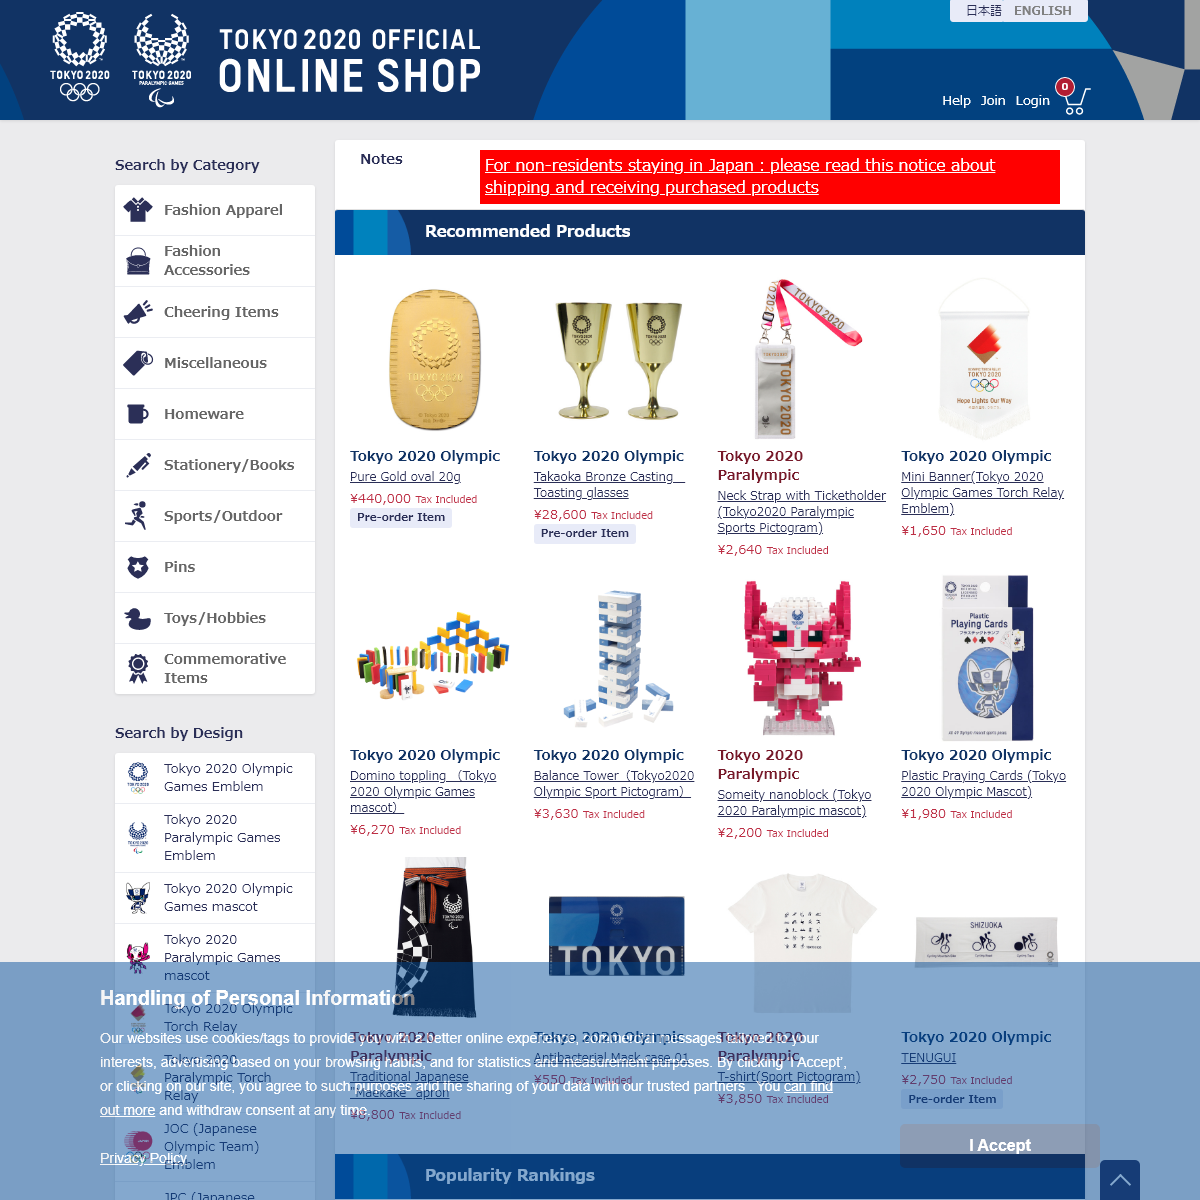 Tokyo 2020 Official Online Shop - Olympic and Paralympic Games